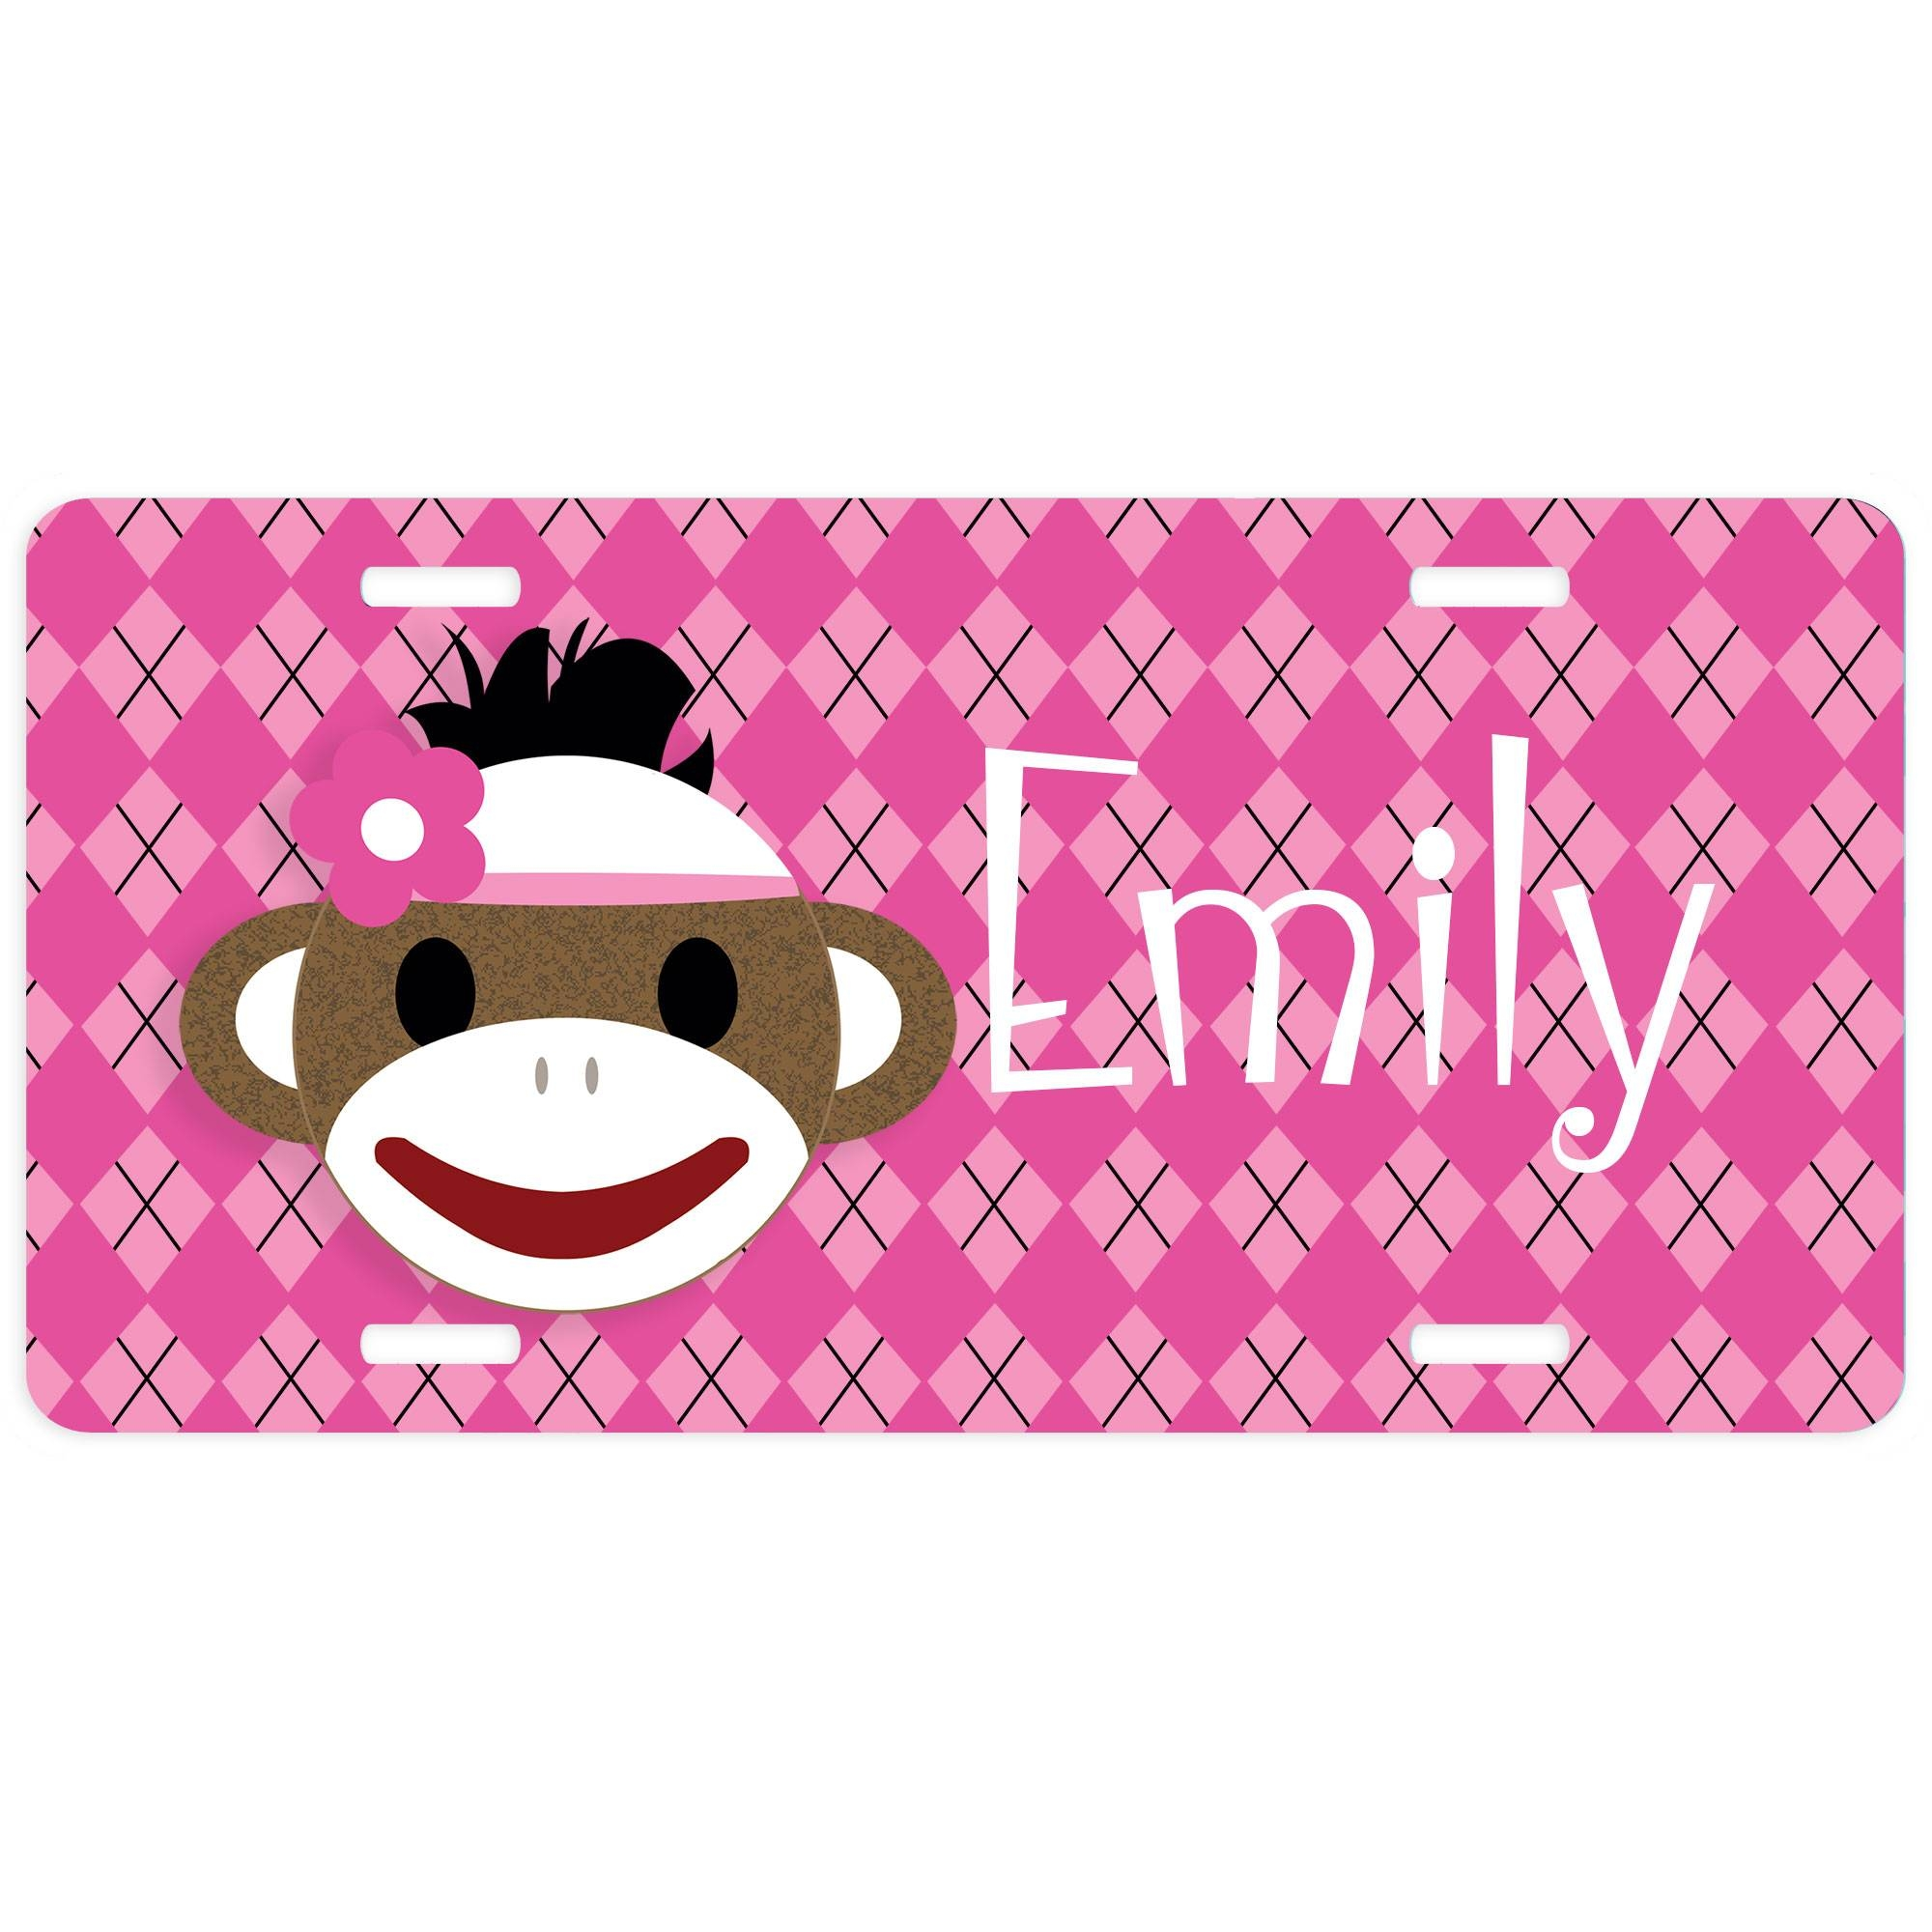 Sock Monkey Car Tag, Personalized Decorative Sock Monkey License Pertaining To Recent Sock Monkey Wall Art (View 22 of 30)